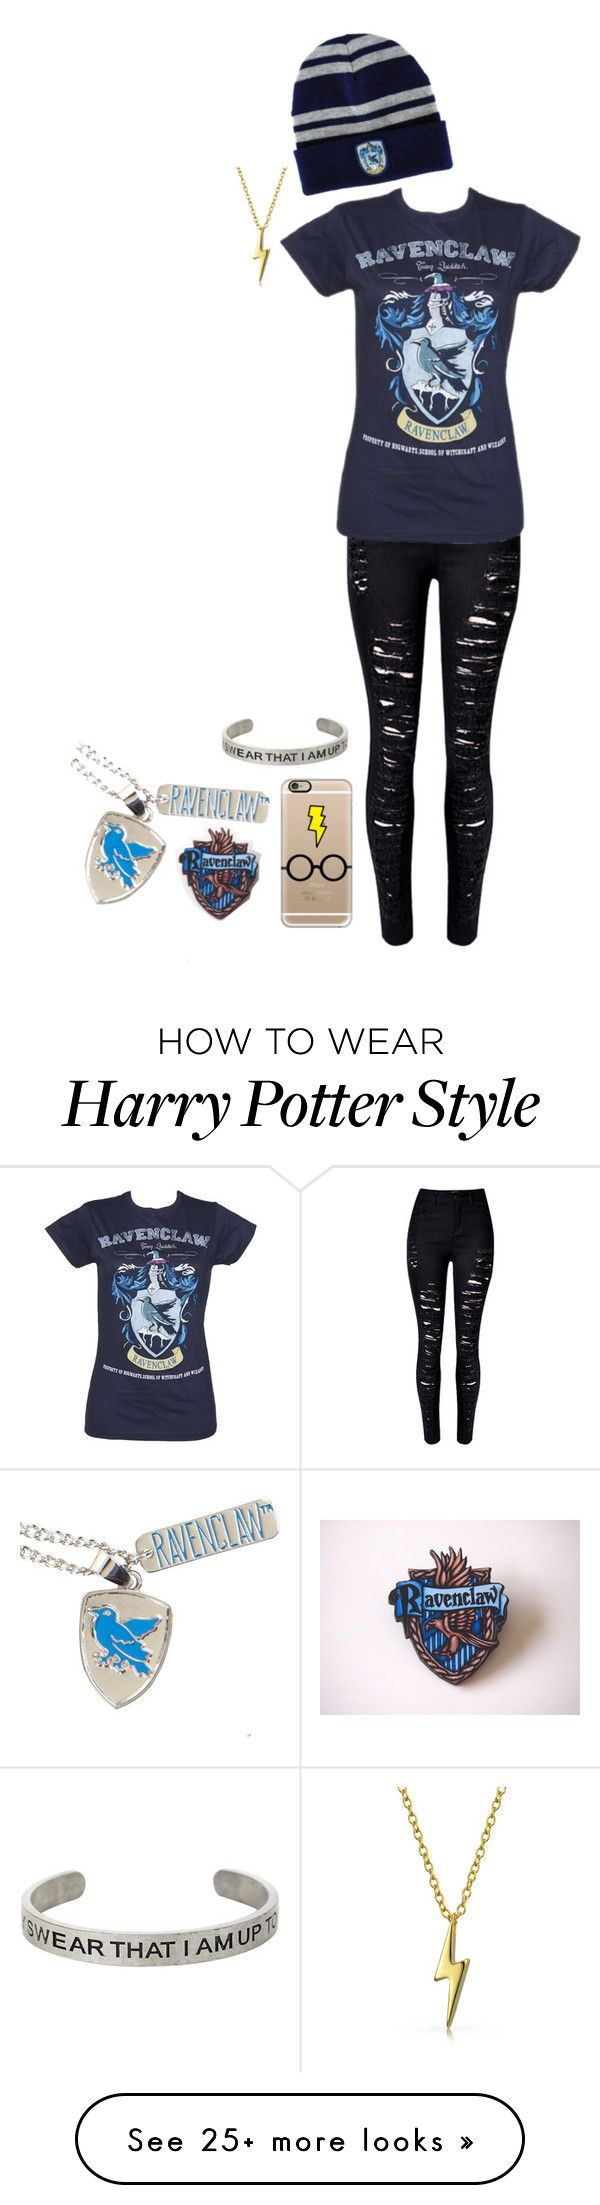 Mobile compatible blood wallpapers drew toepfer -  Ravenclaw By Sprinkleofenchantment On Polyvore Featuring Casetify And Bling Jewelry